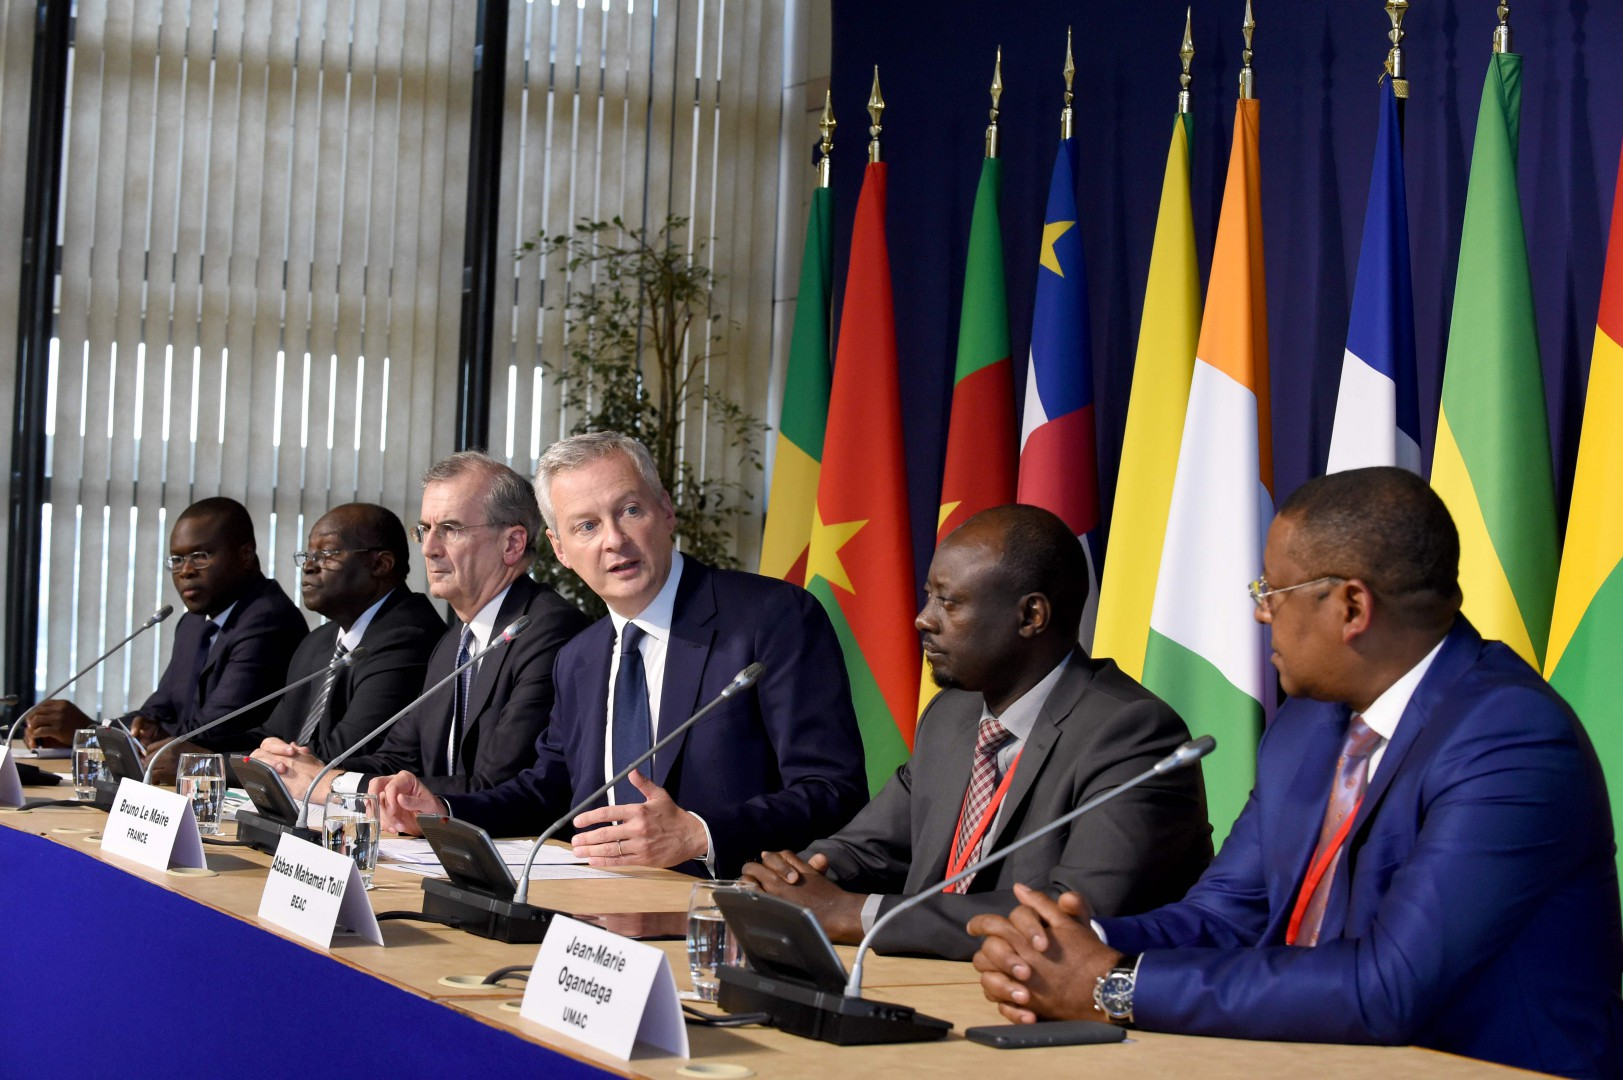 French Economy and Finance Minister Bruno Le maire (3R) addresses a press conference on October 8, 2018 flanked by (from L) Benin's Economy and Finance Minister and head of UEMOA Romuald Wadagni, BCEAO Governor Tiemoko Meyliet Kone from Ivory coast, Governor of the Banque de France Francois Villeroy de Galhau, Governor of the BEAC Abbas Mahamat Tolli from Chad and Gabonese Minister of Economy Jean-Marie Ogandaga, head of UMAC as part of a CFA Franc Zone Finance Ministers meeting at the French Finance Ministry in Paris. (Photo by ERIC PIERMONT / AFP)